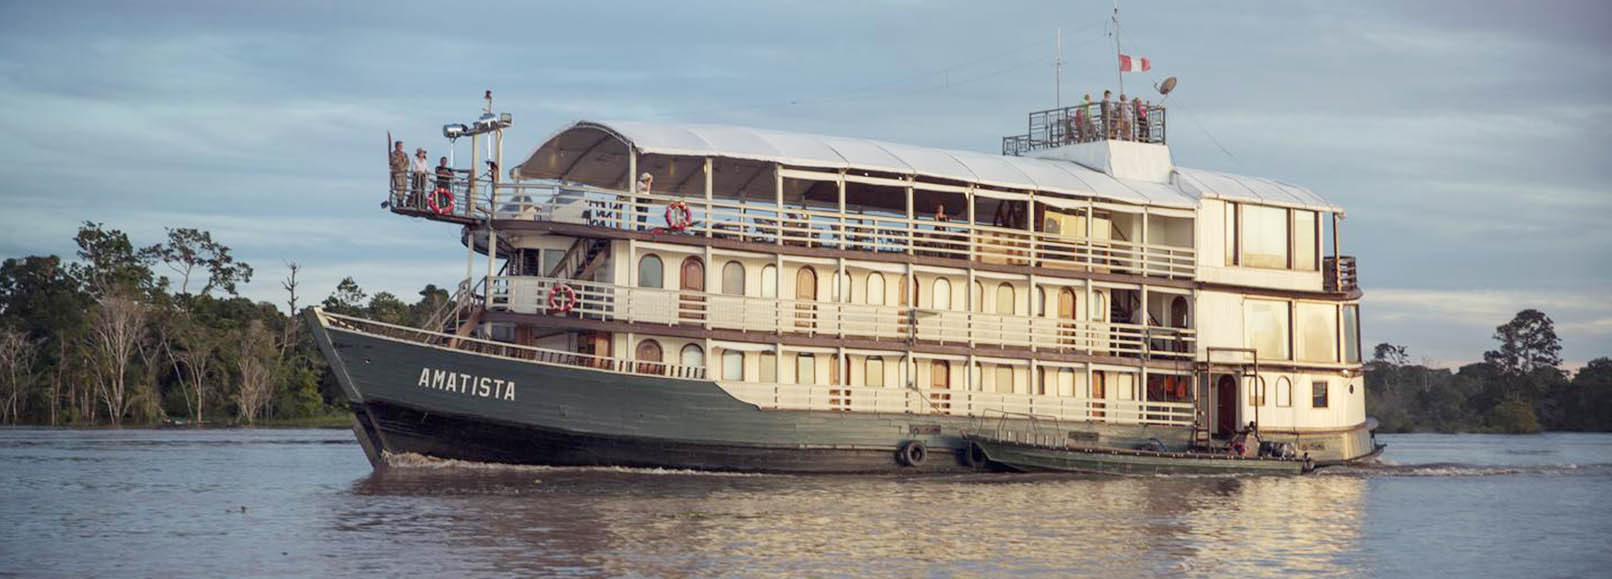 Amatista Amazon Riverboat